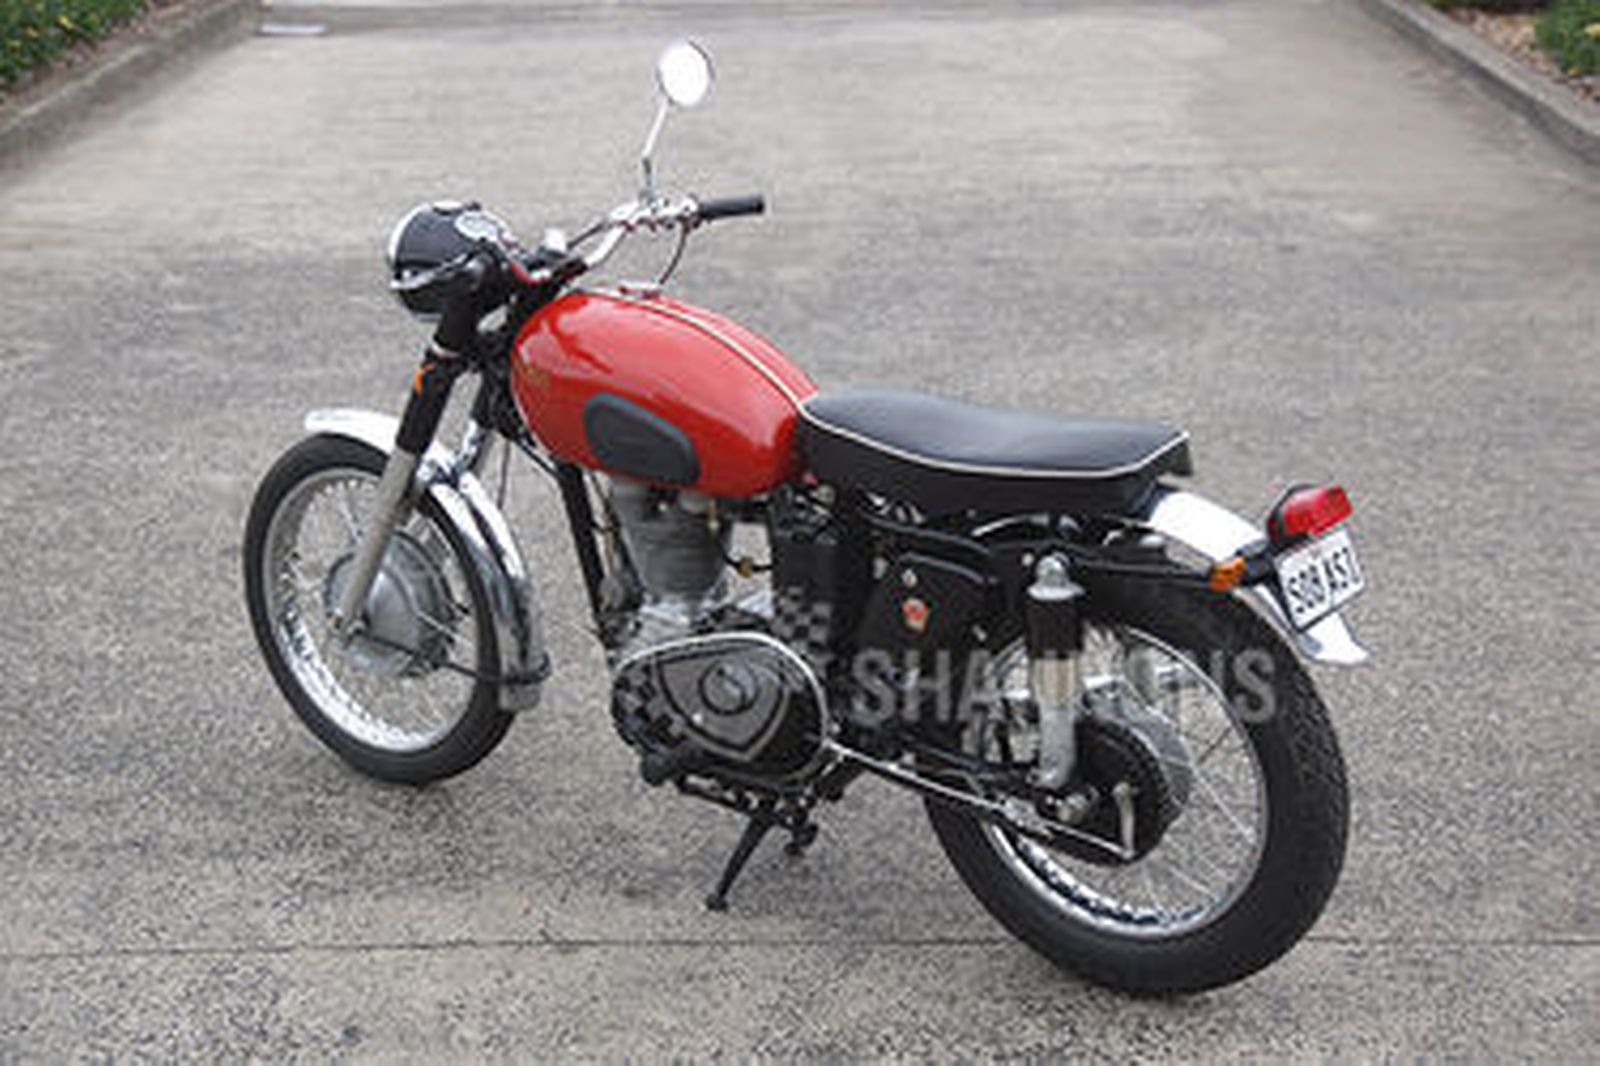 Matchless 350cc G3LS Motorcycle